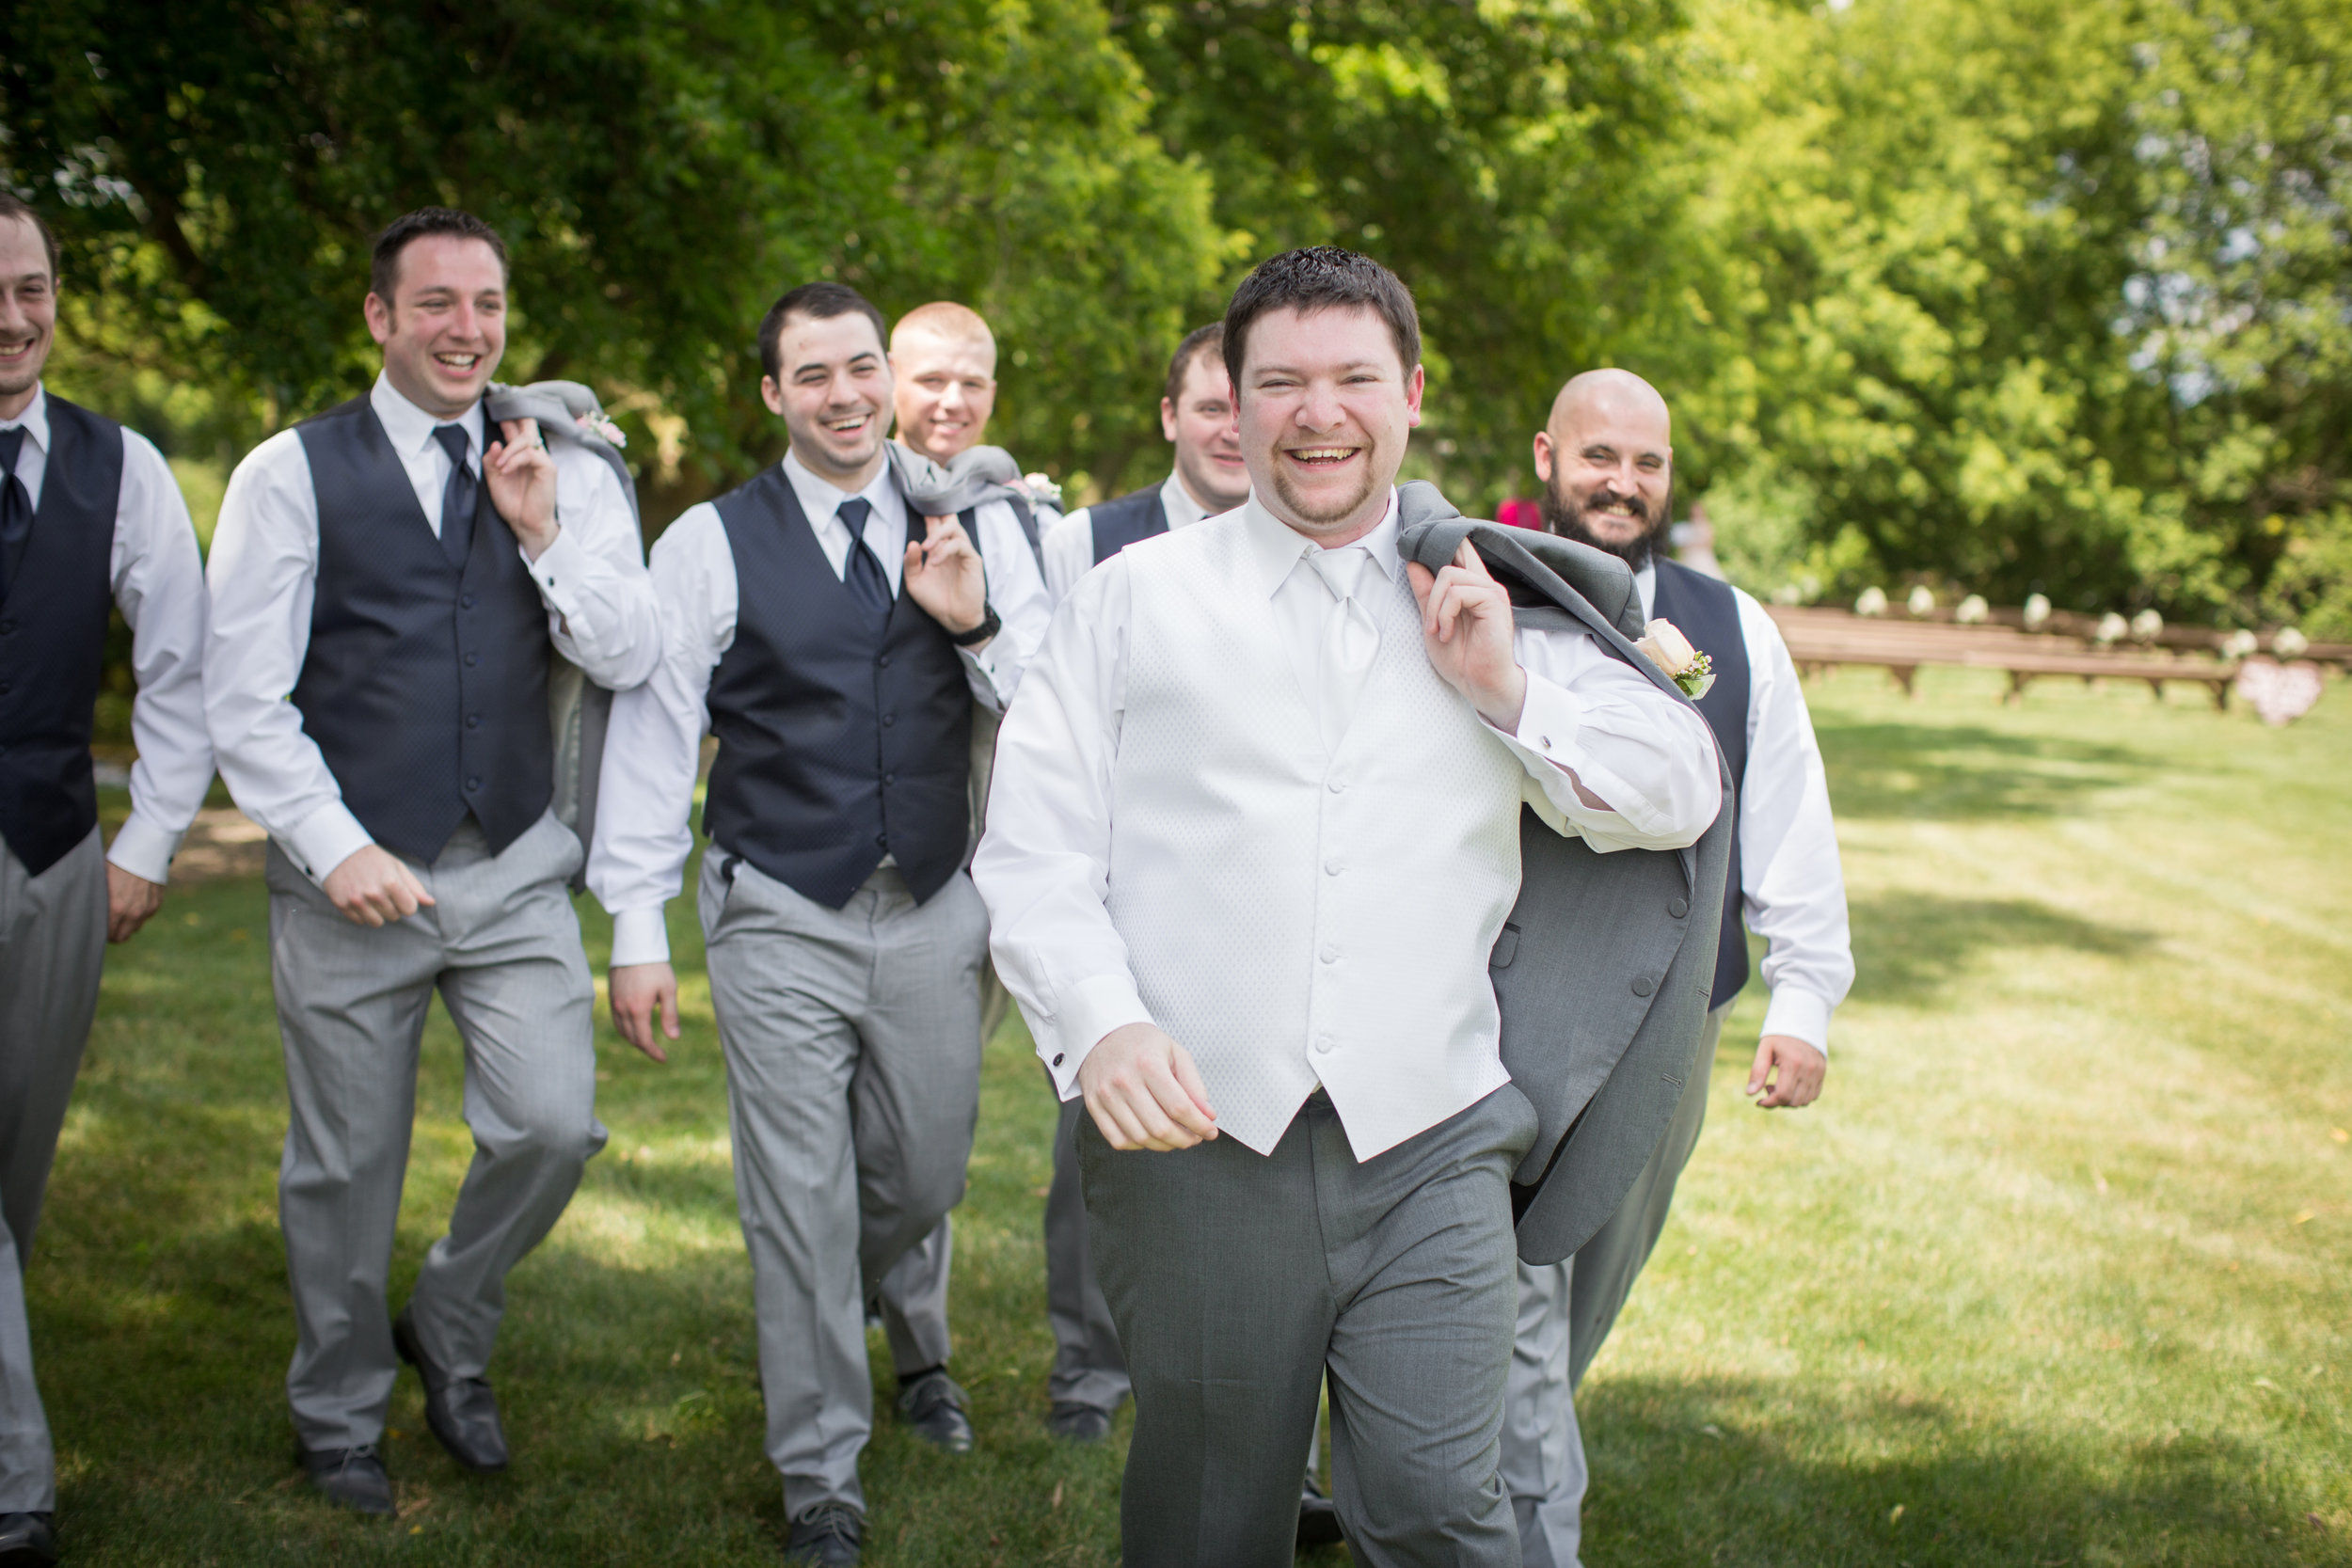 Groom walking with his guys while taking wedding photos is detroit michigan